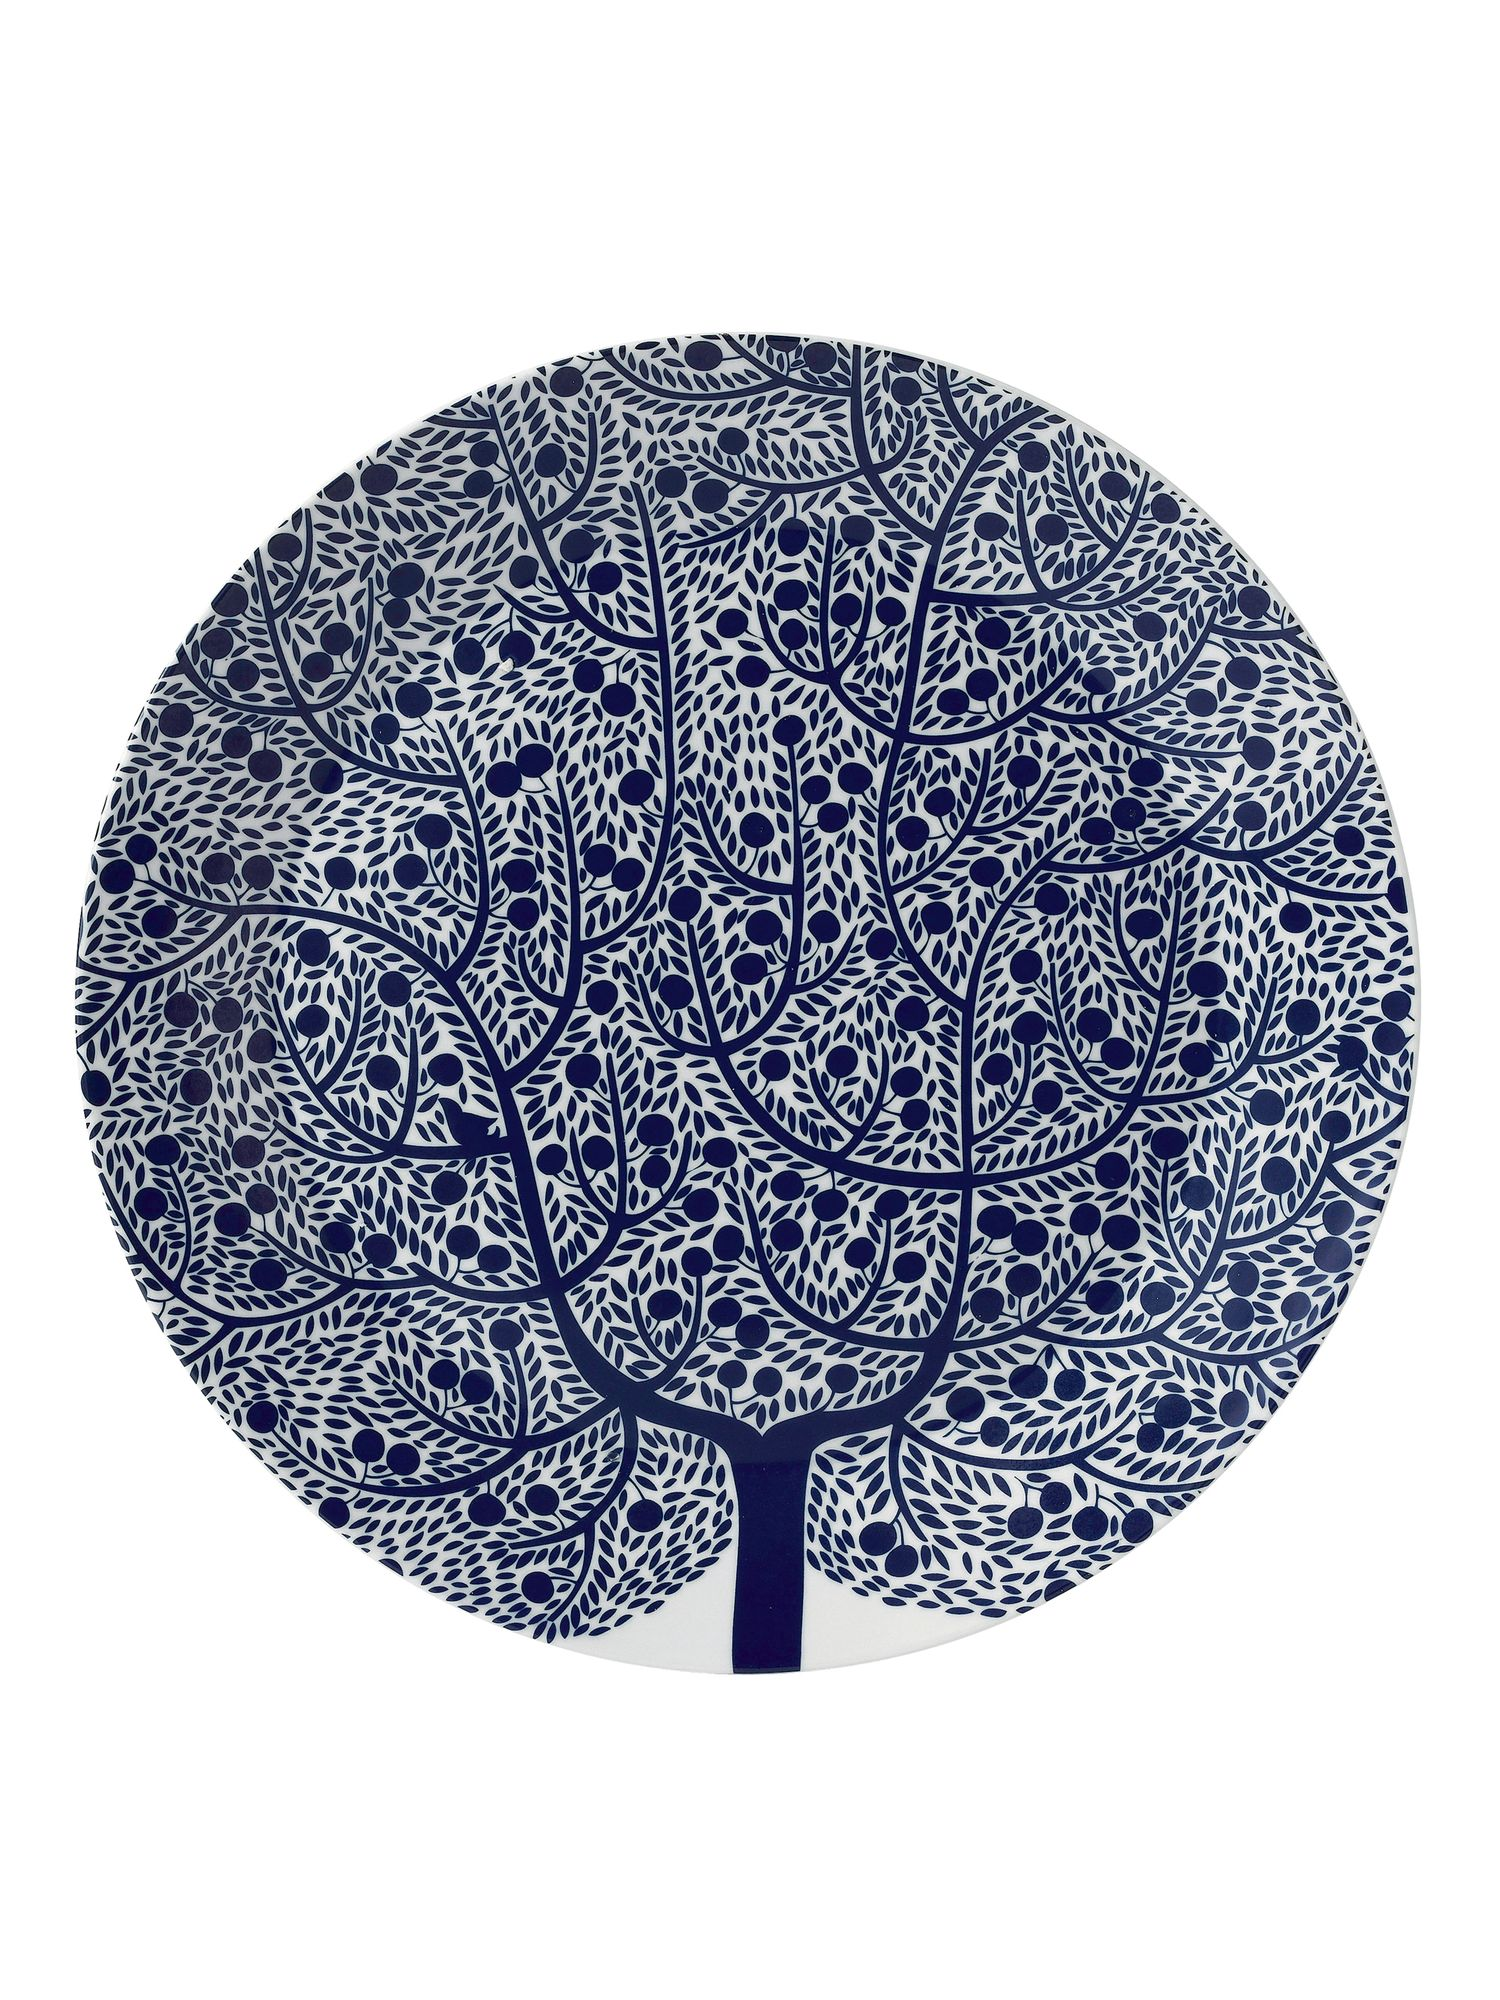 Fable tree 31.5cm round platter